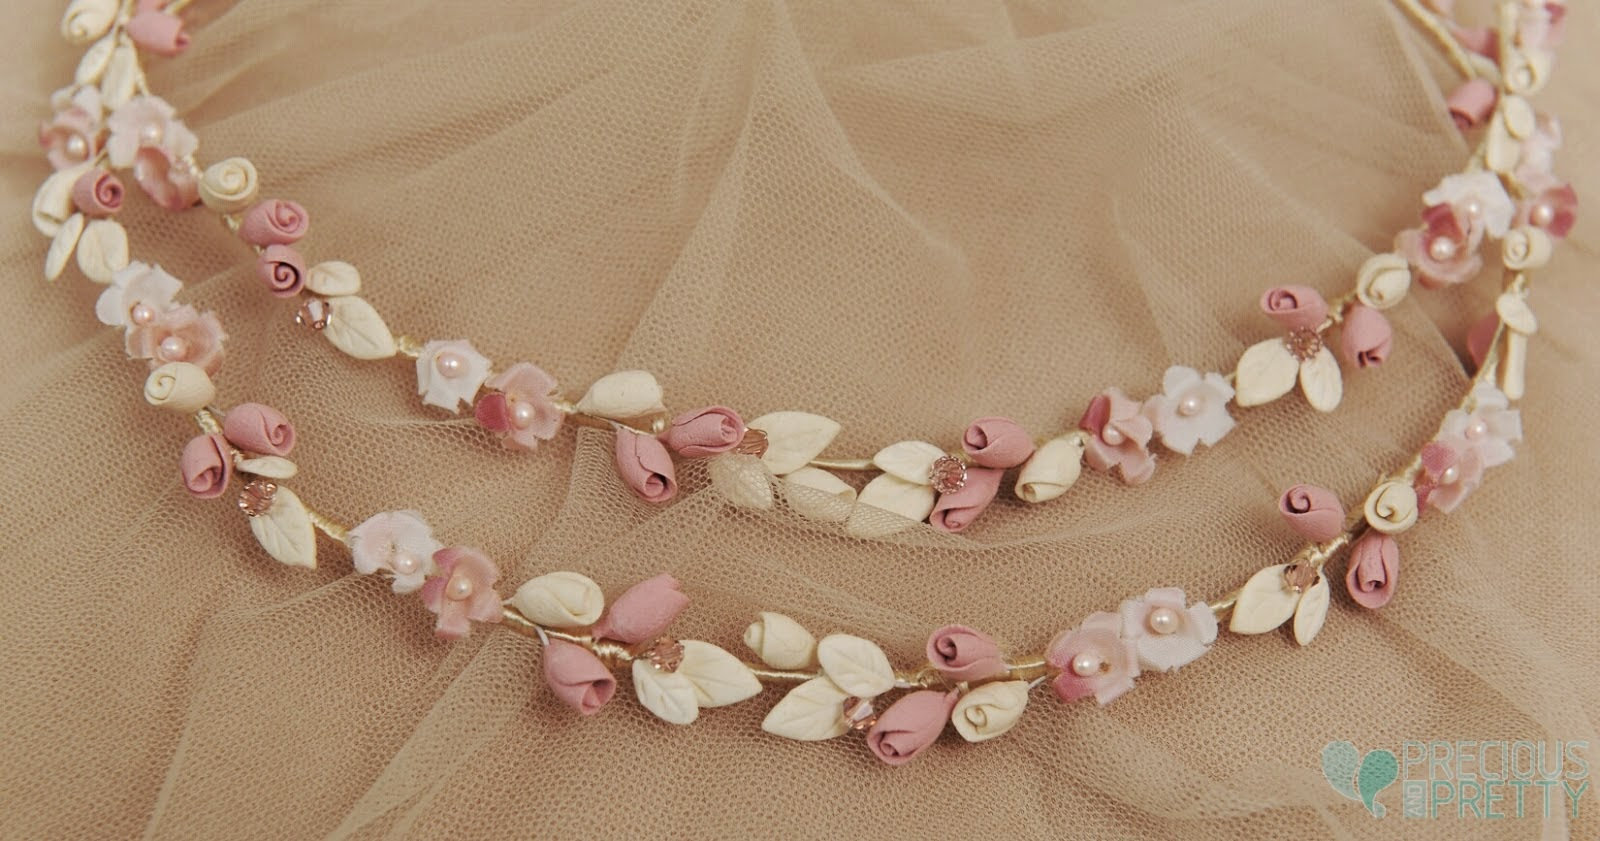 Romantic wedding crowns with flowers 1070